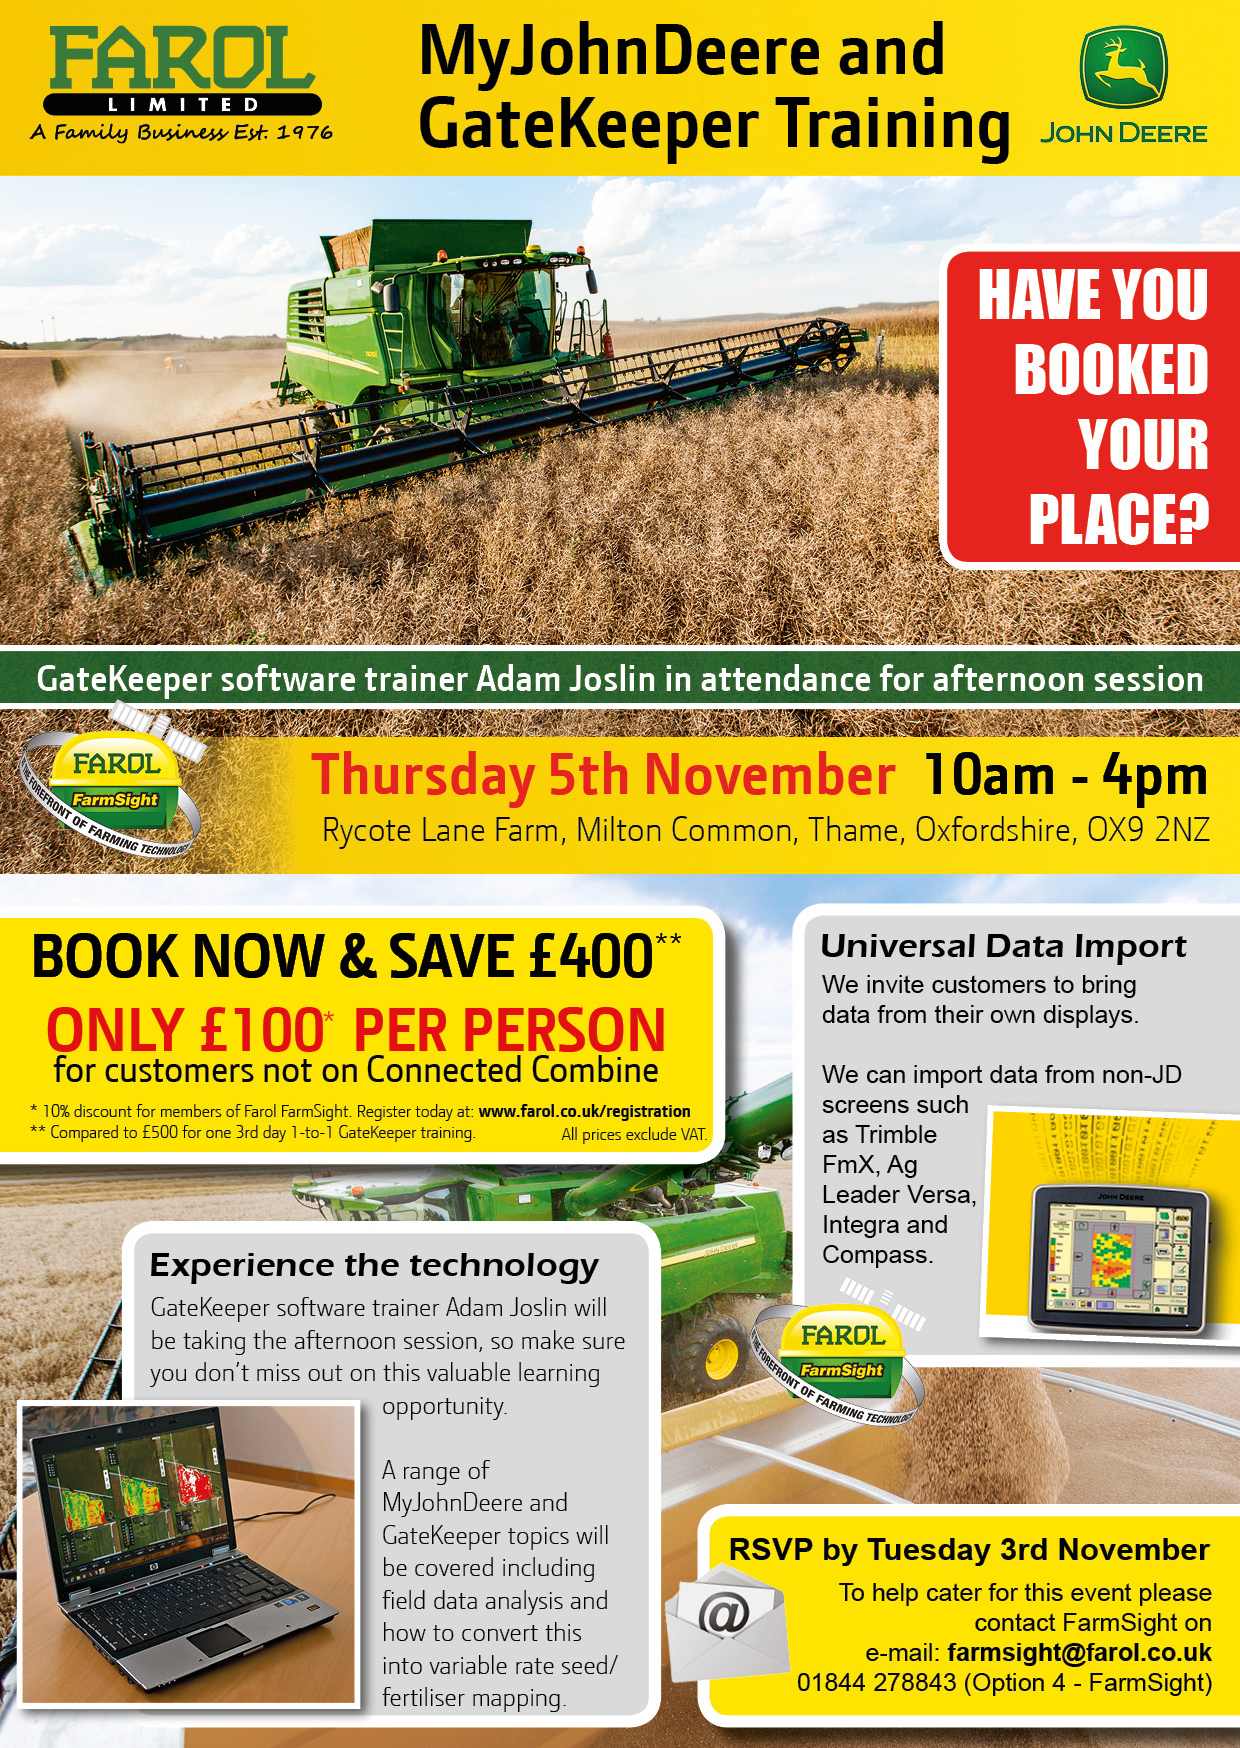 MyJohnDeere & GateKeeper Training